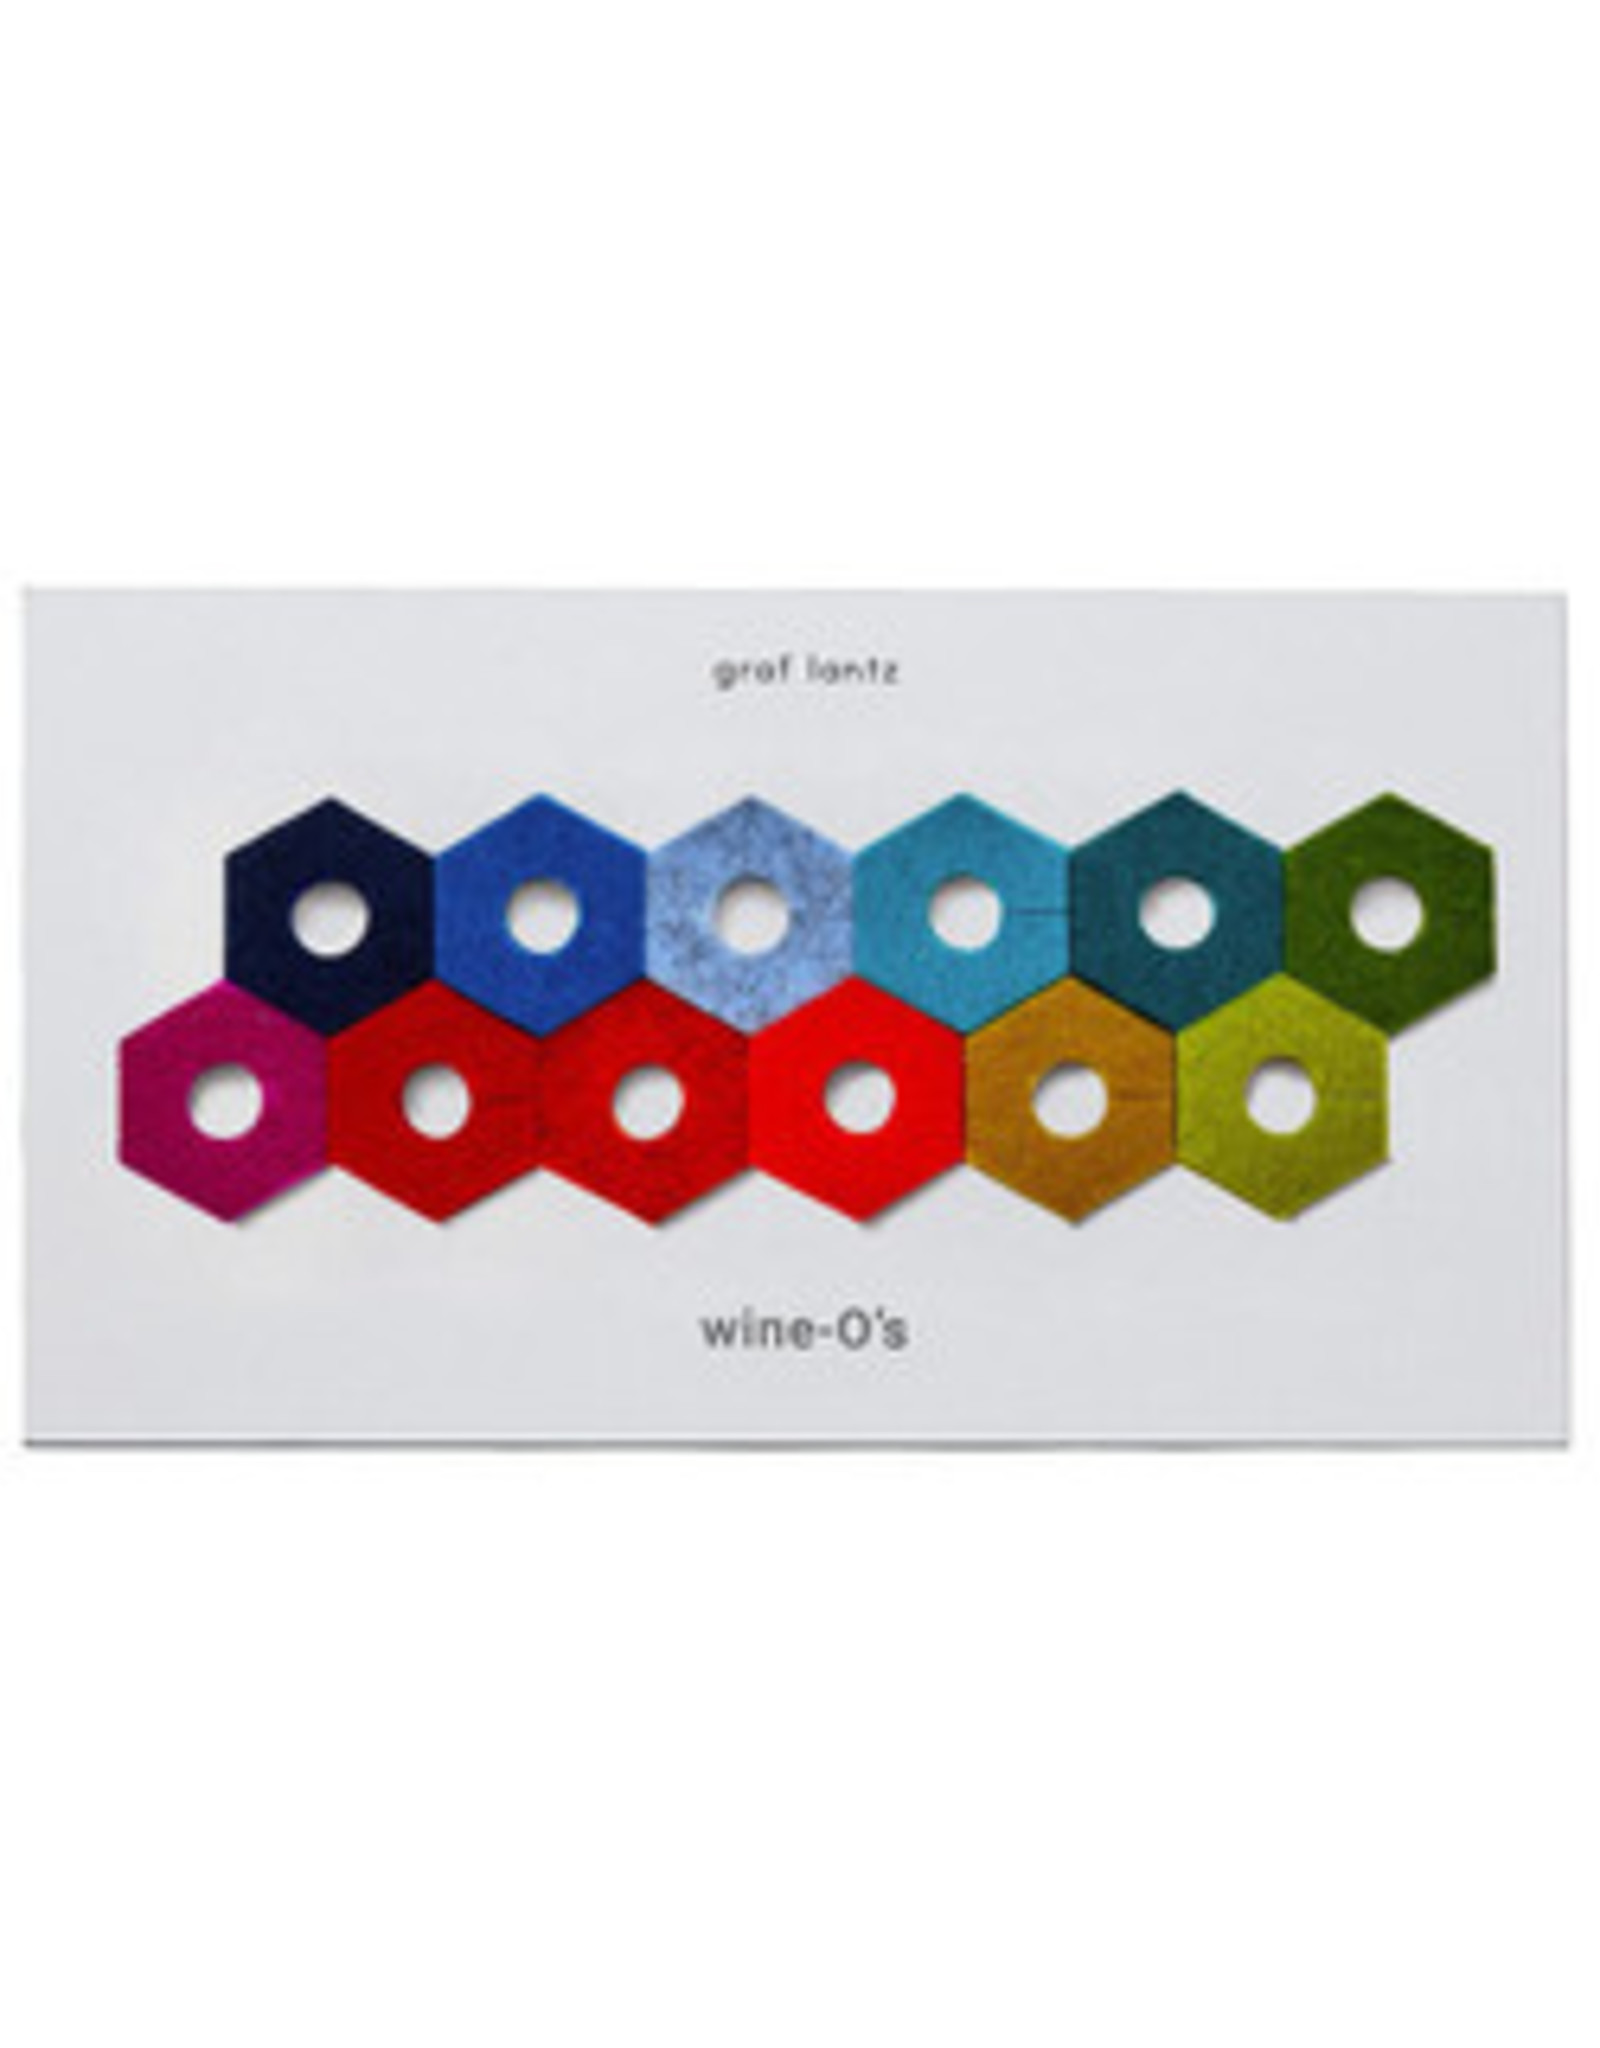 Graf&Lantz Wine-O's Hex Rainbow Mix